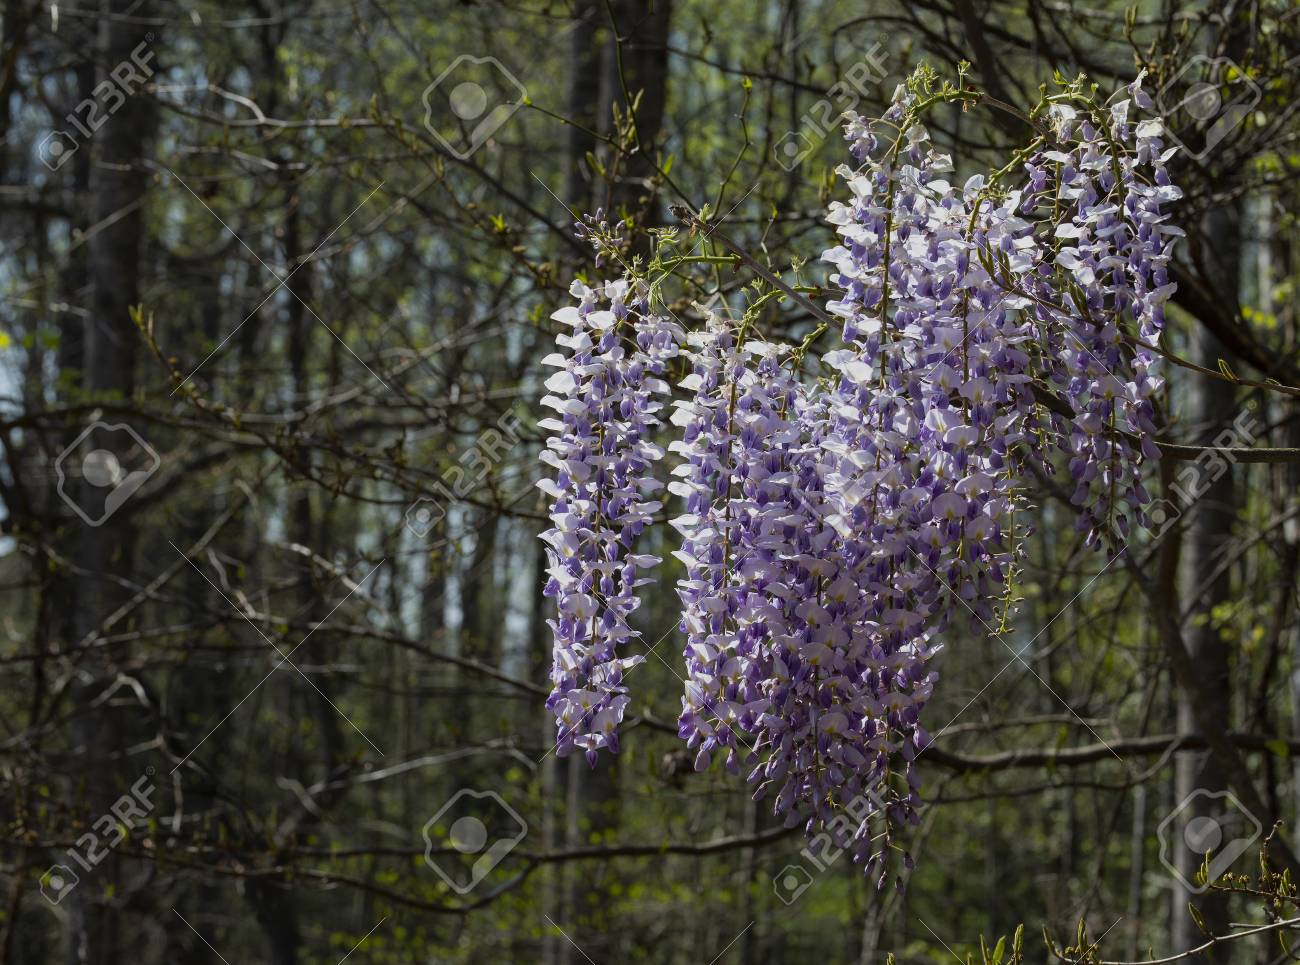 Blooming Purple And White Wisteria Flowers On Woodland Vines Stock